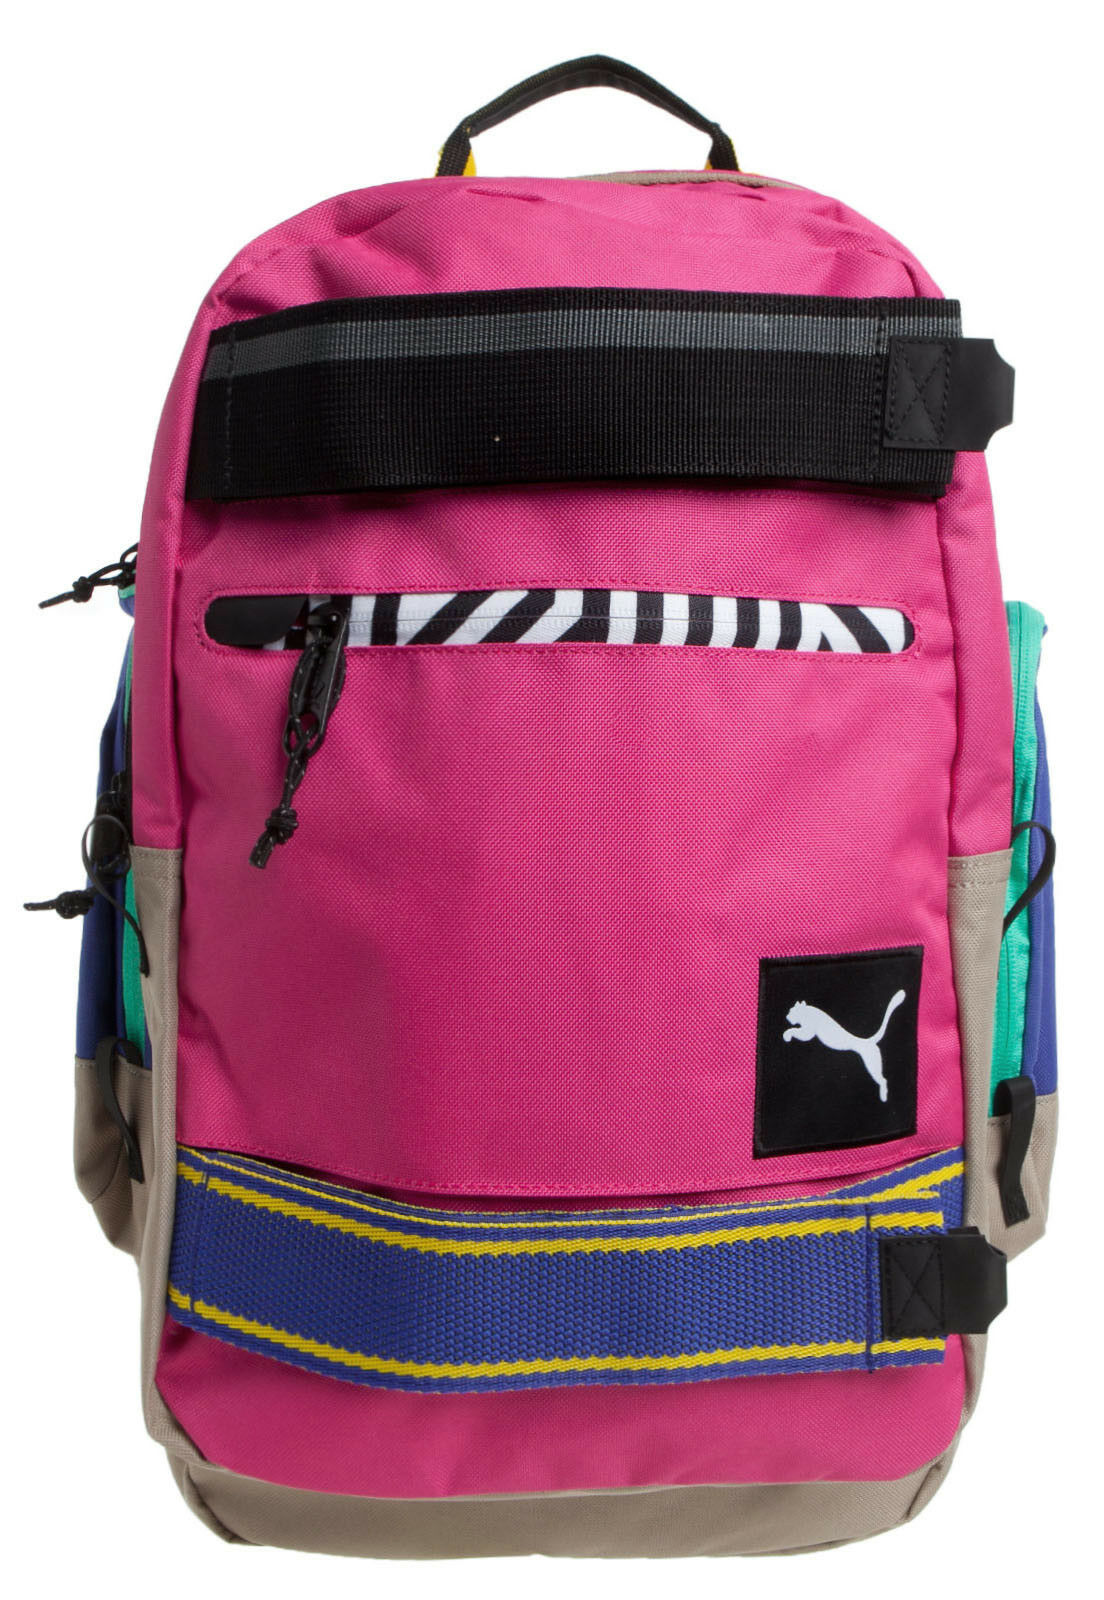 Puma Unisex Adults PY Blaze Casual Backpack Rucksack Bag Pink 072212 04 Y7B | eBay